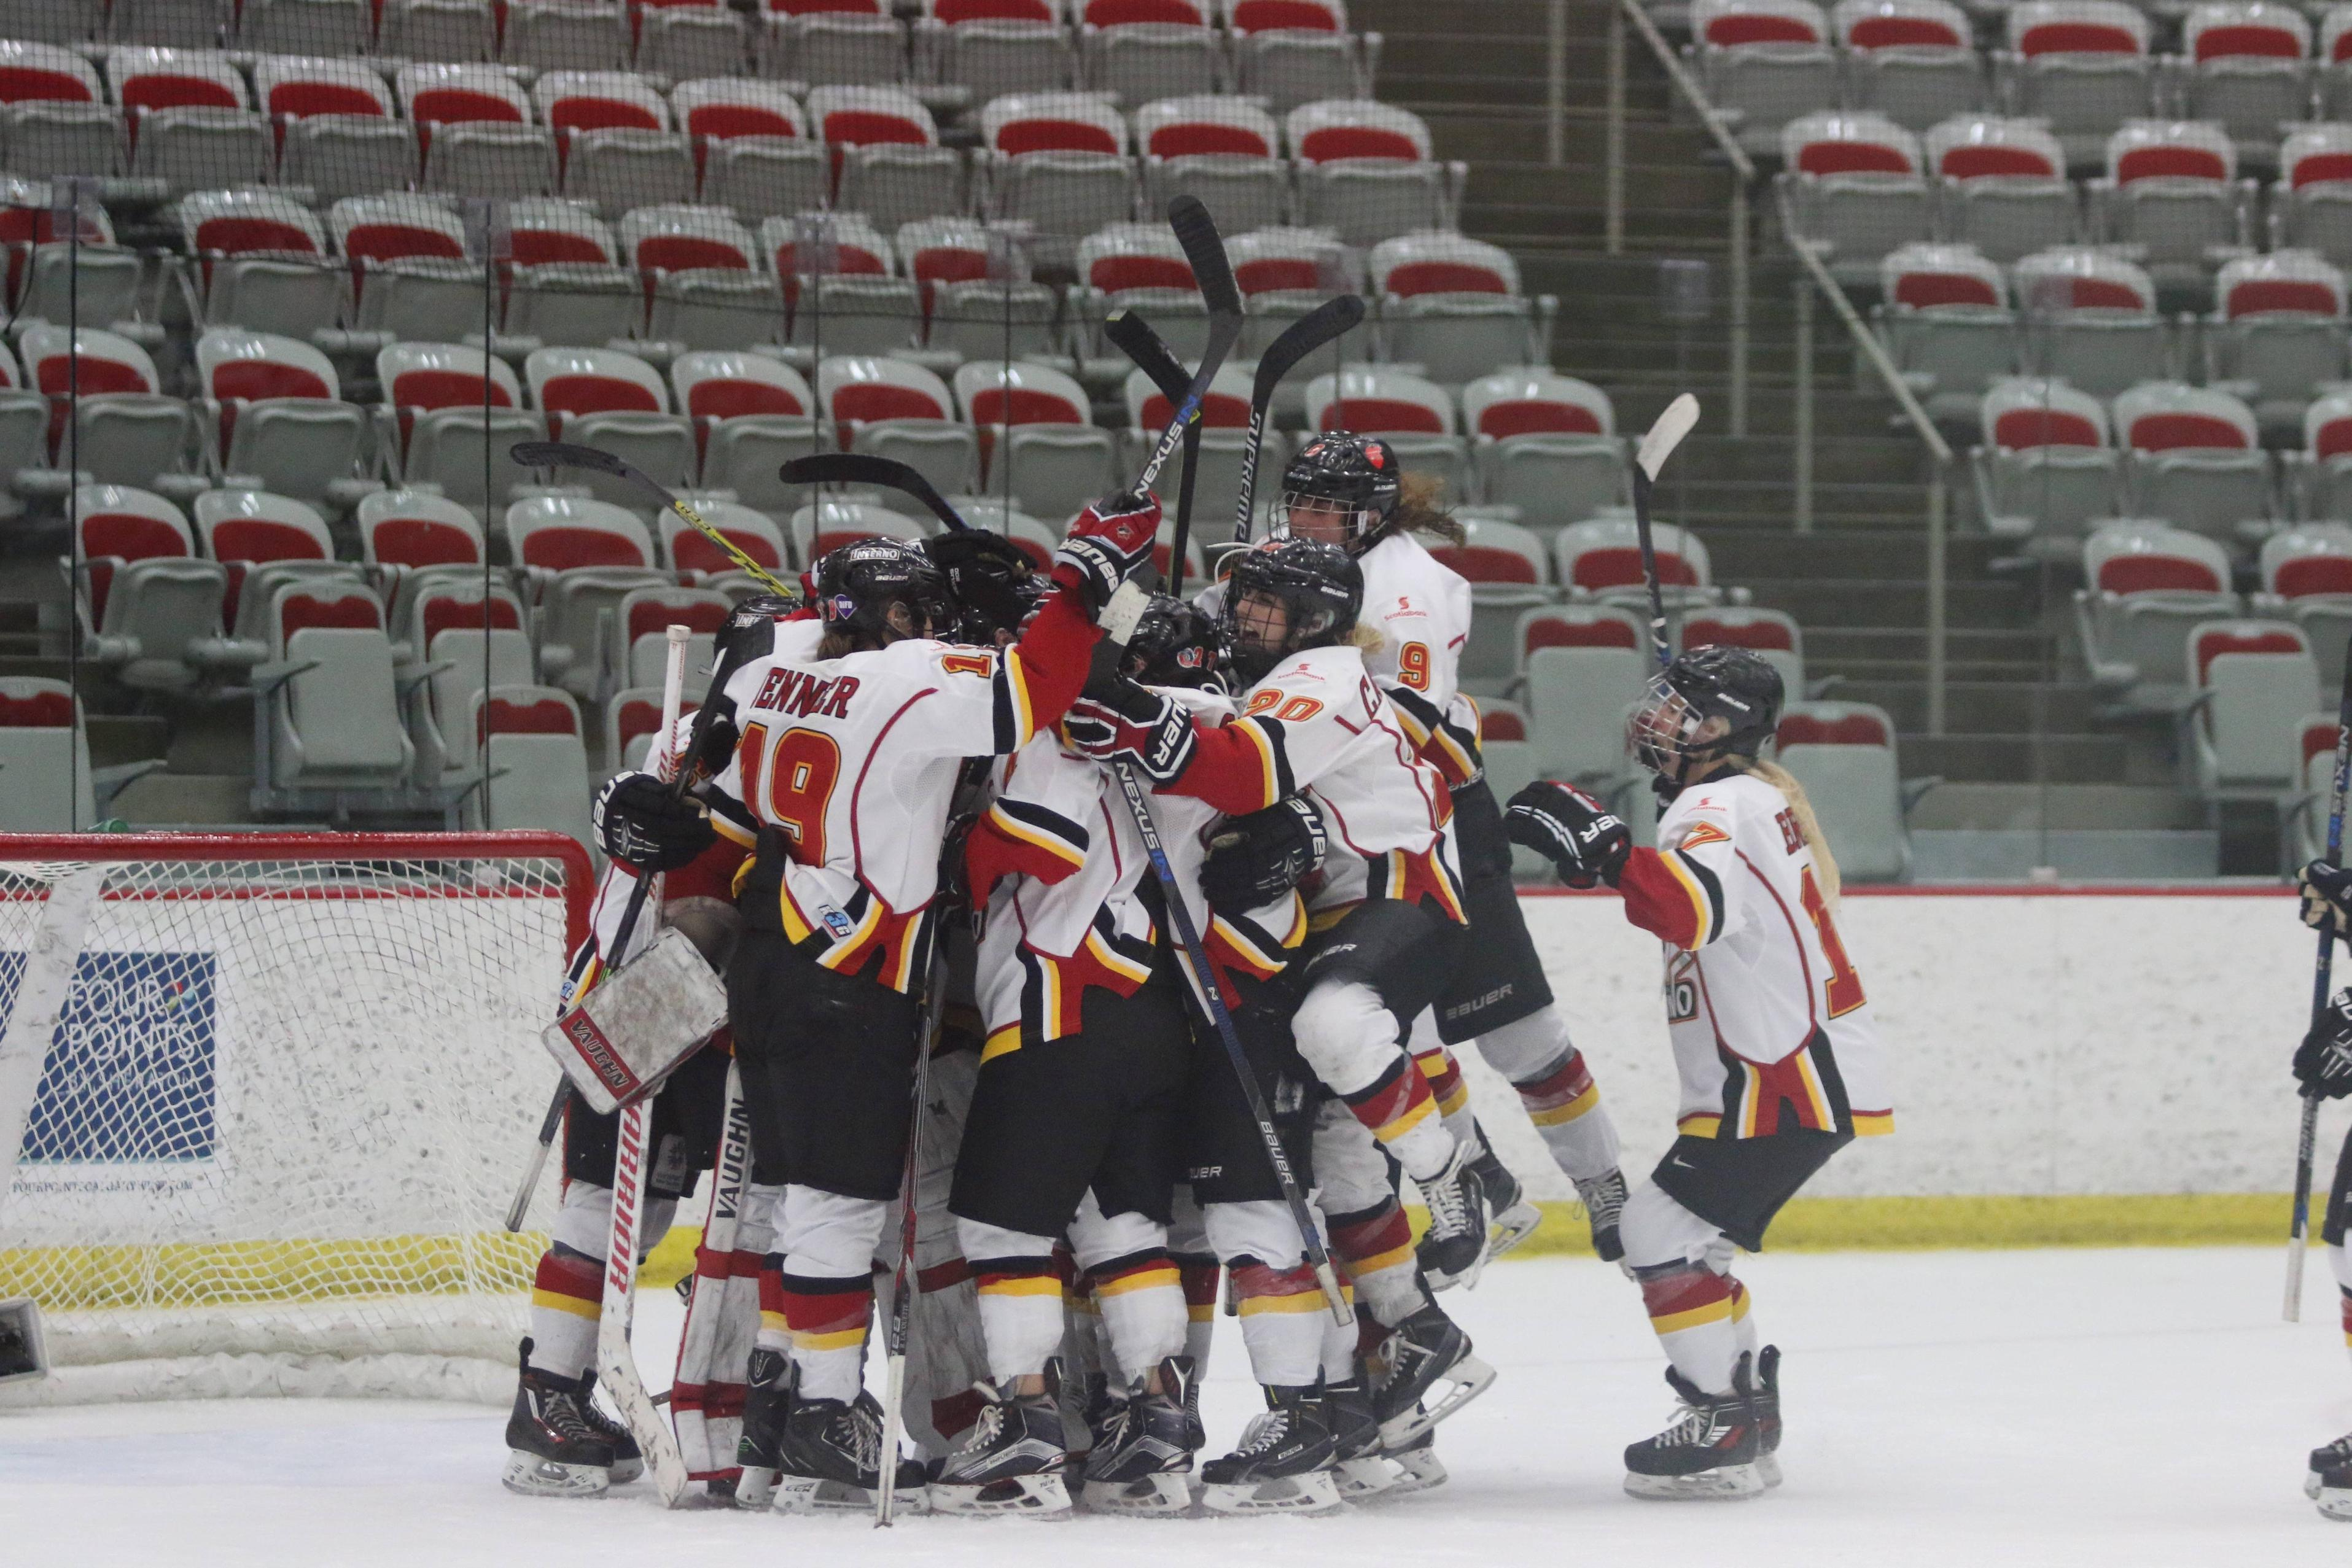 The Inferno celebrate their win against the Thunder Saturday night, which earned them a berth in the Clarkson Cup Final against Les Canadiennes de Montreal. Rebecca Johnston scored the game-winning goal in the third period.